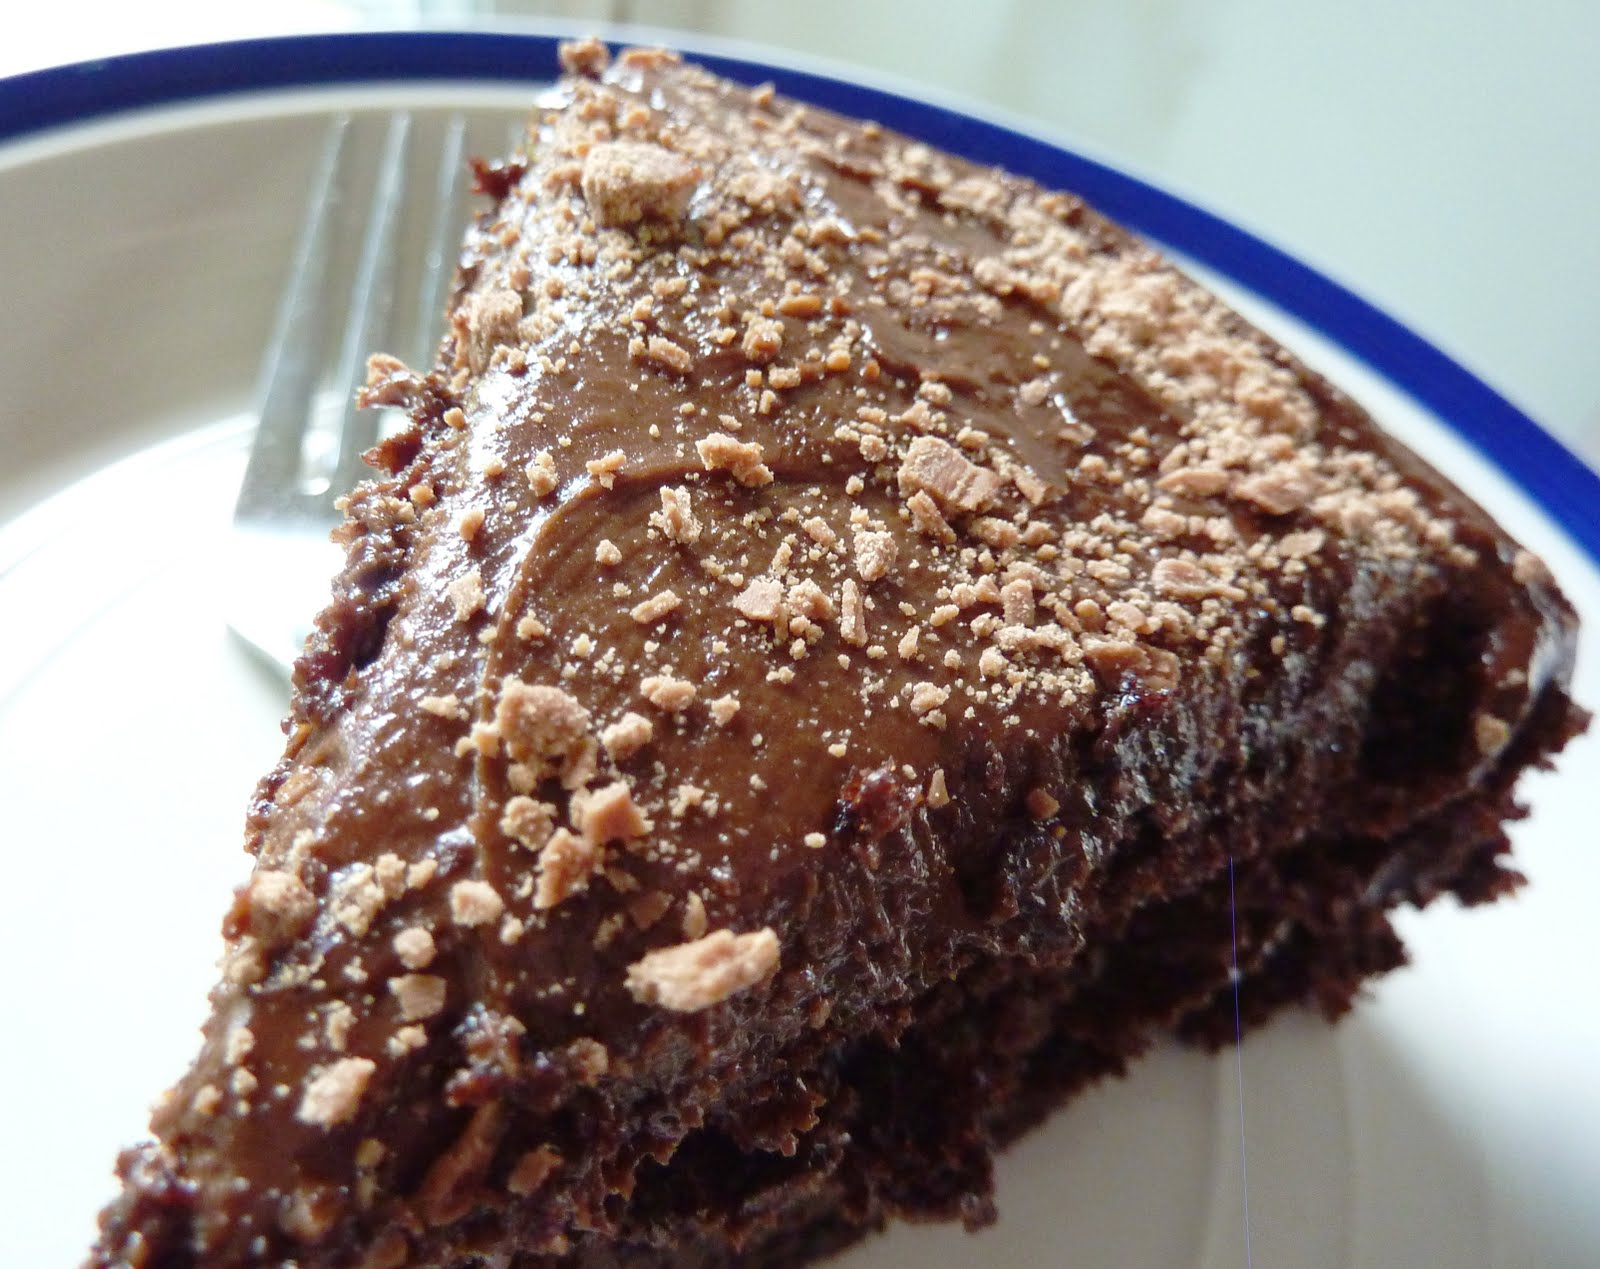 Home on the Range: World Domination and Cake - Guinness Chocolate Cake